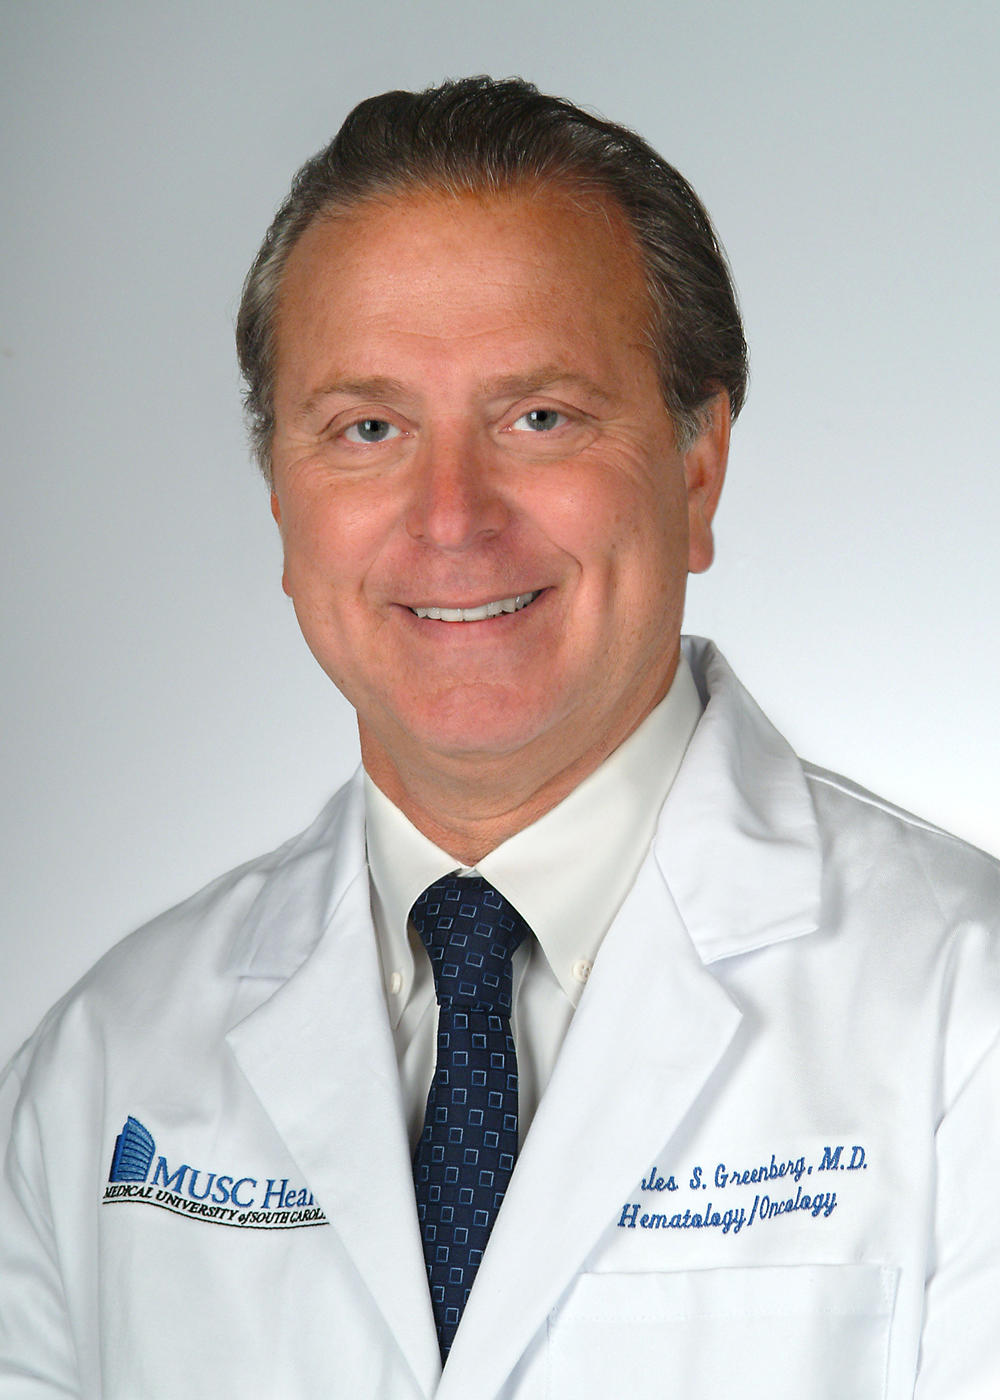 Charles S Greenberg, MD - Charleston, SC 29425 - (843)792-9200 | ShowMeLocal.com